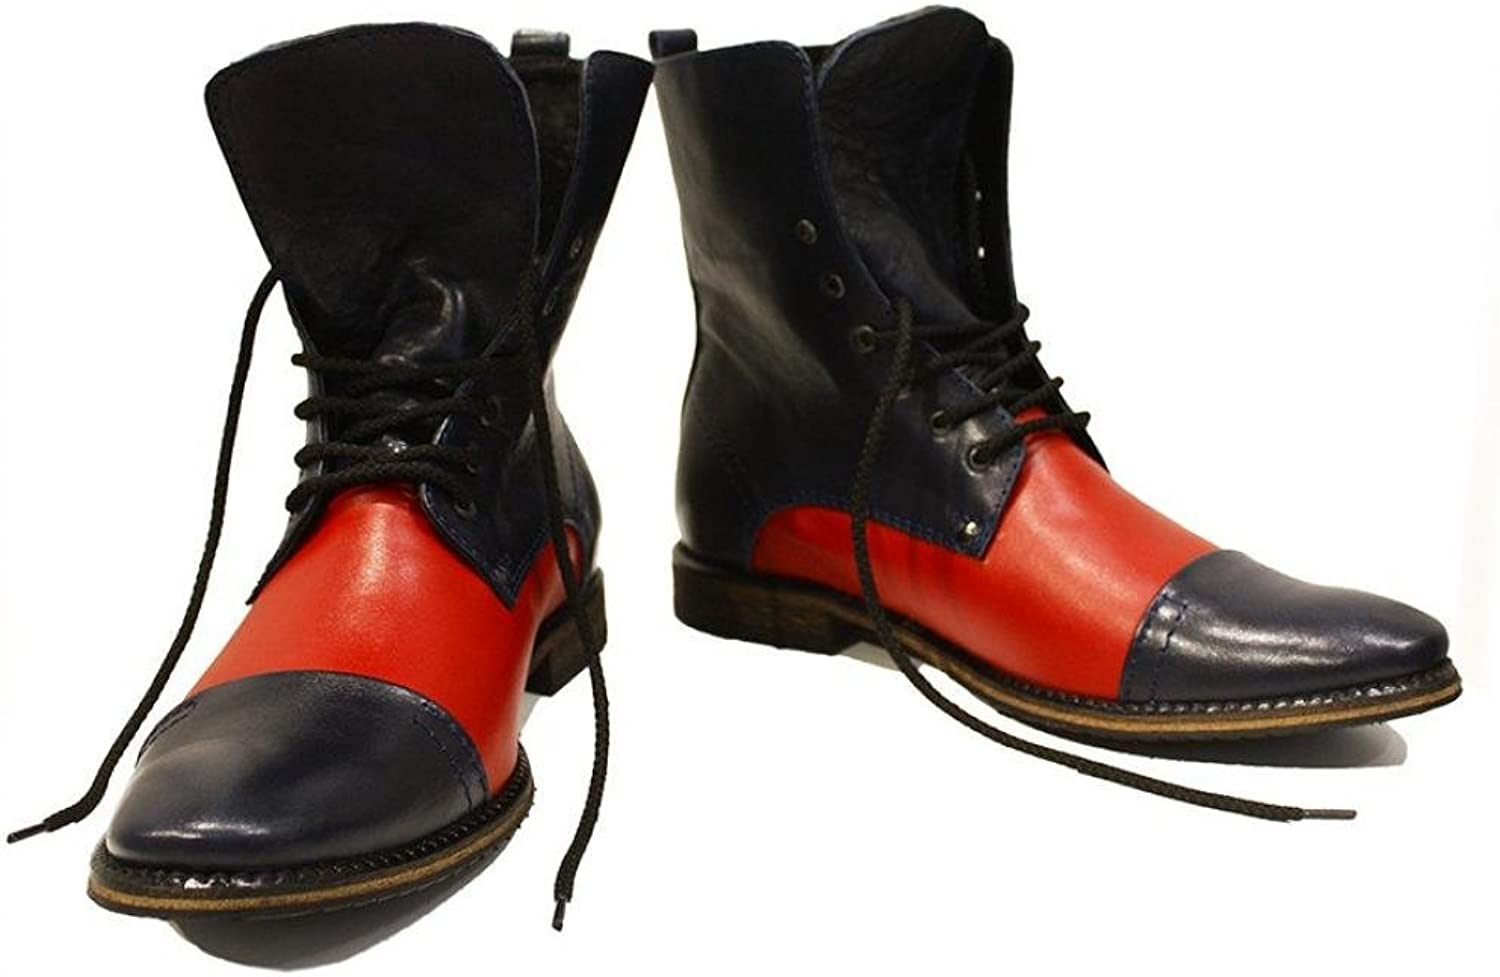 Peppeshoes Modello Stiletto - Handmade Italian Leather Mens color Red High Boots - Cowhide Smooth Leather - Lace-Up